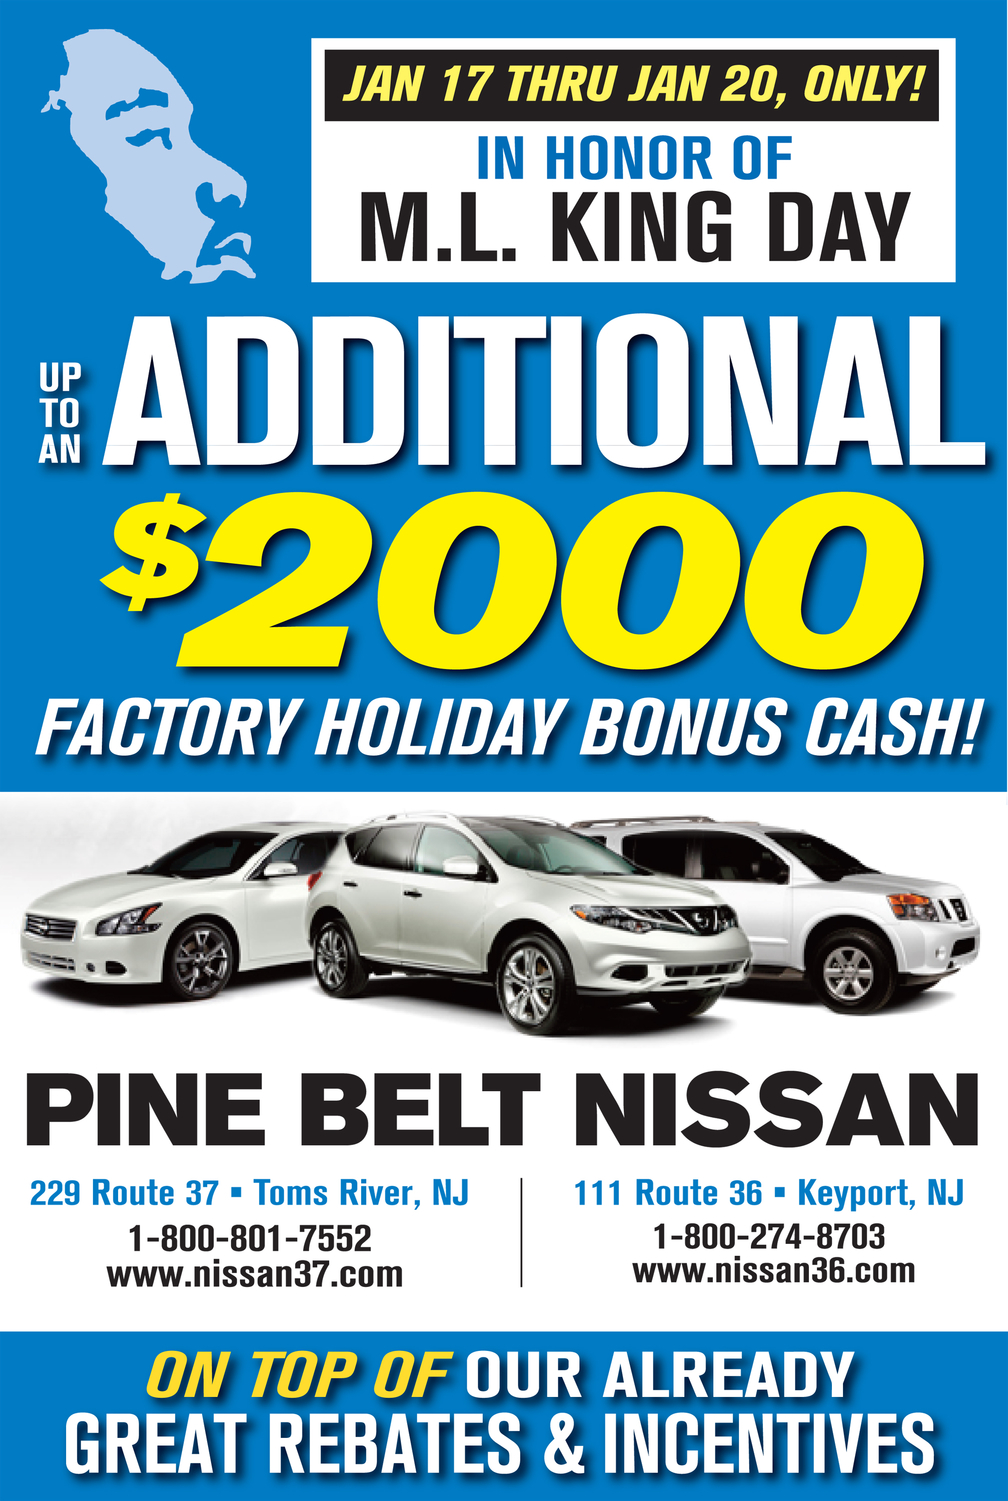 EXTRA $2,000 Now Available At Pine Belt Nissan